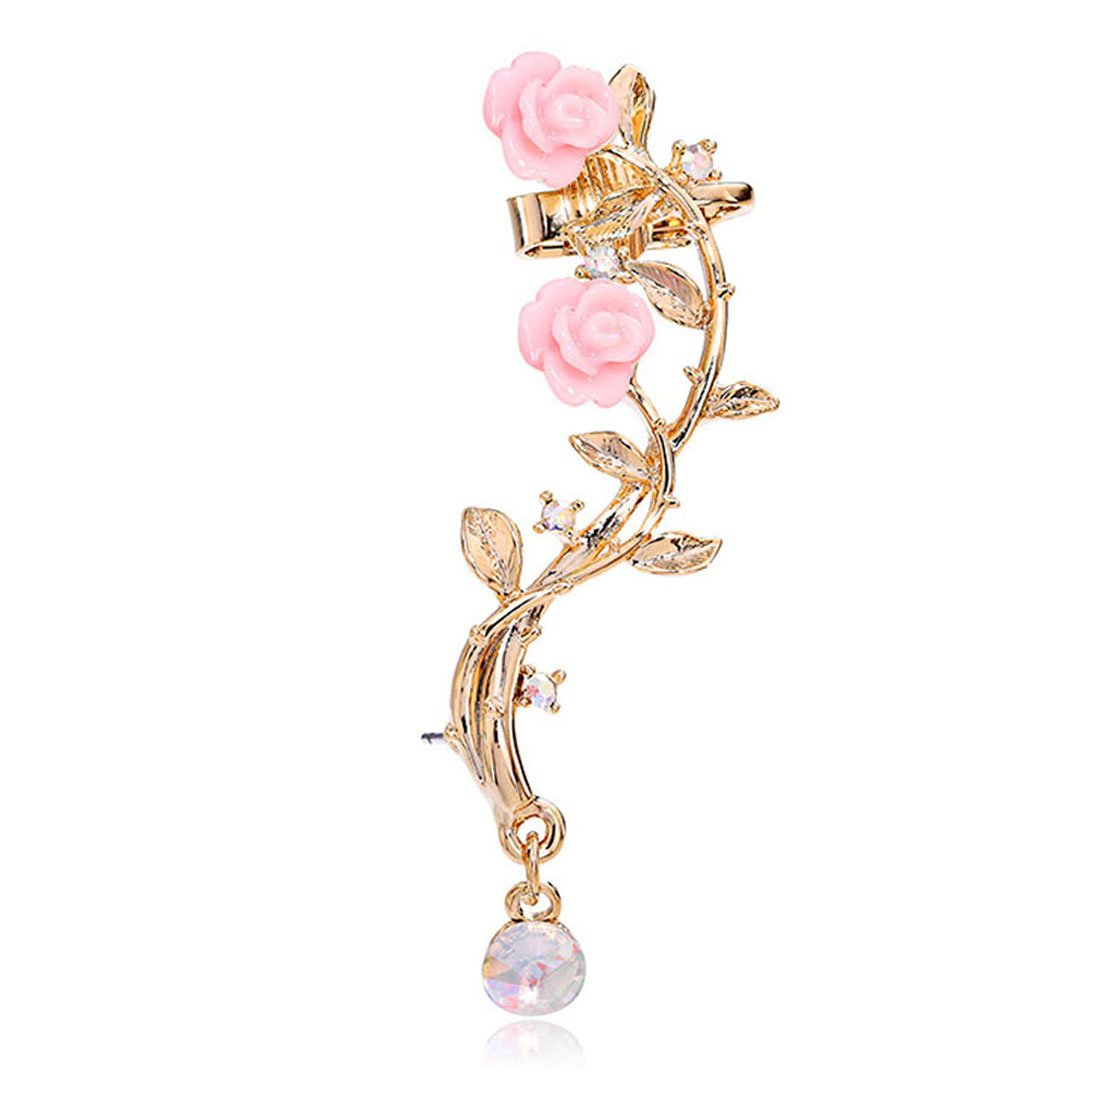 CIShop Pink Rose Zircon Ear cuff Earrings stud Punk Style Ear Wrap(Left ear)